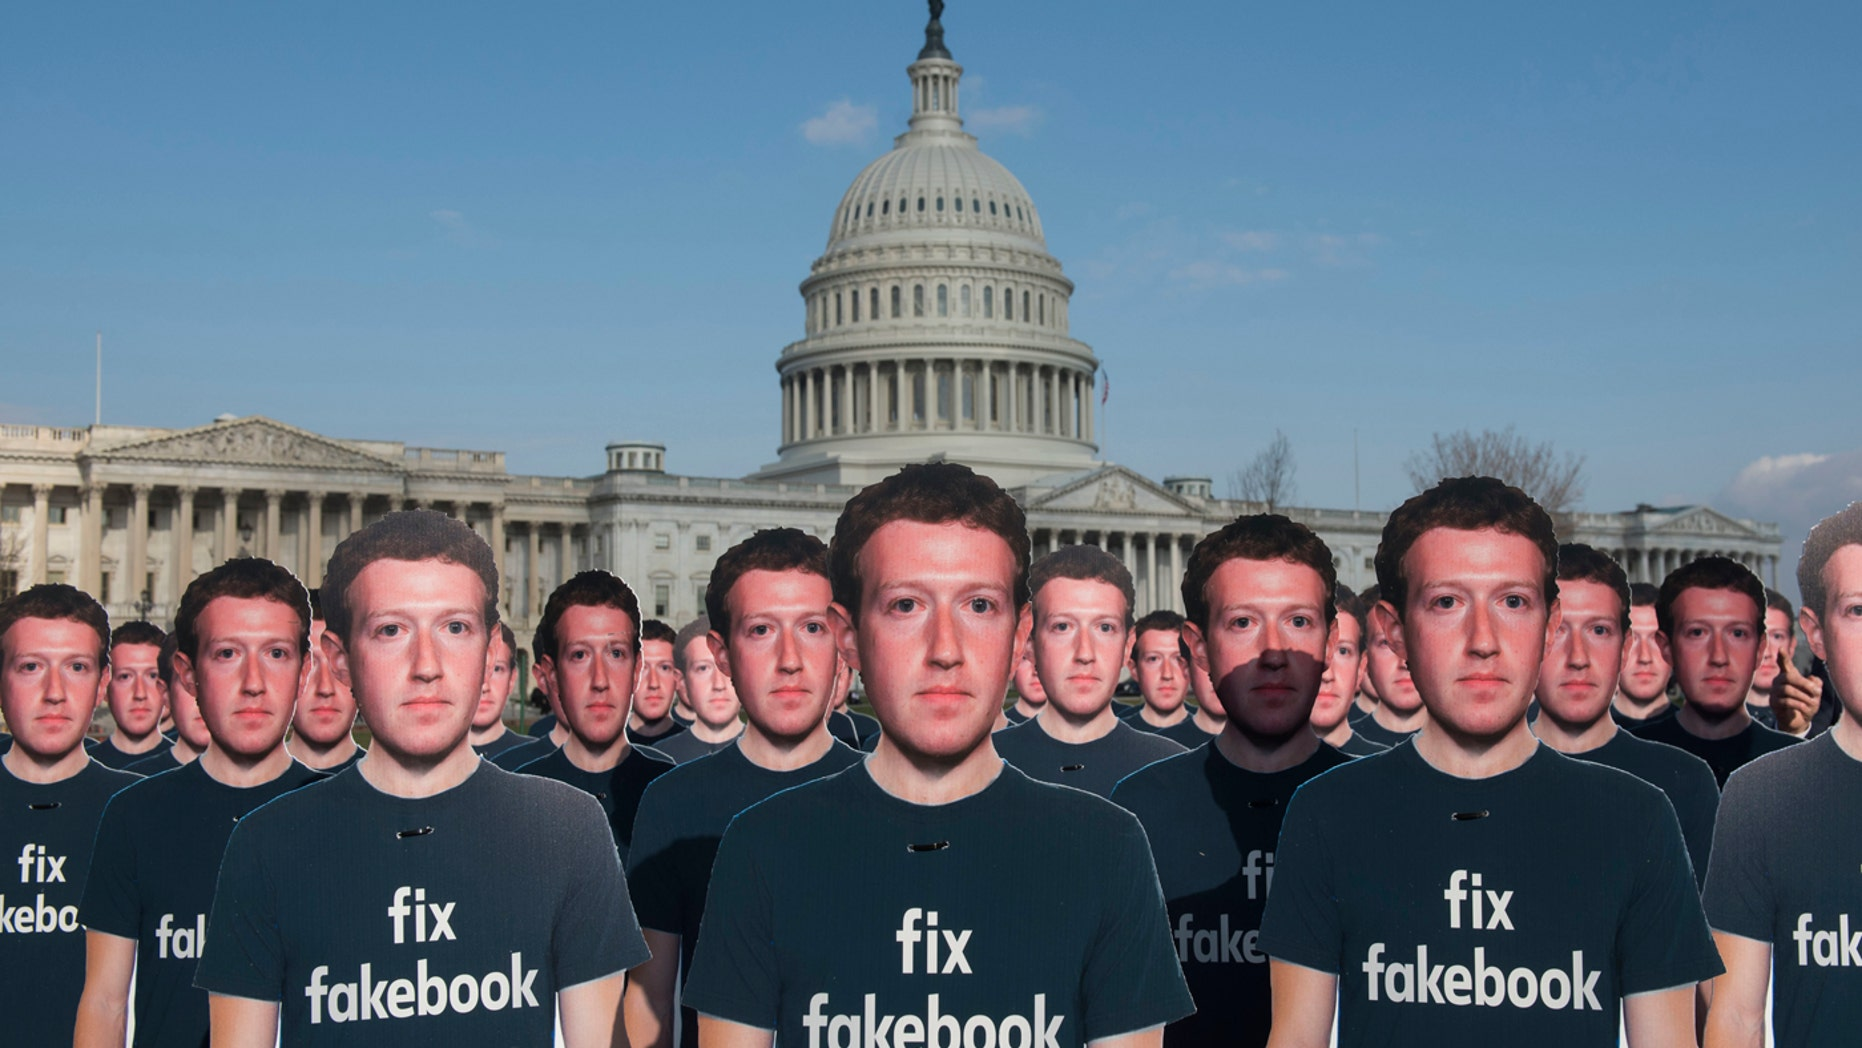 Avaaz staged a protest on Capitol Hill featuring cardboard cutouts of CEO Mark Zuckerberg while he testified before U.S. lawmakers.